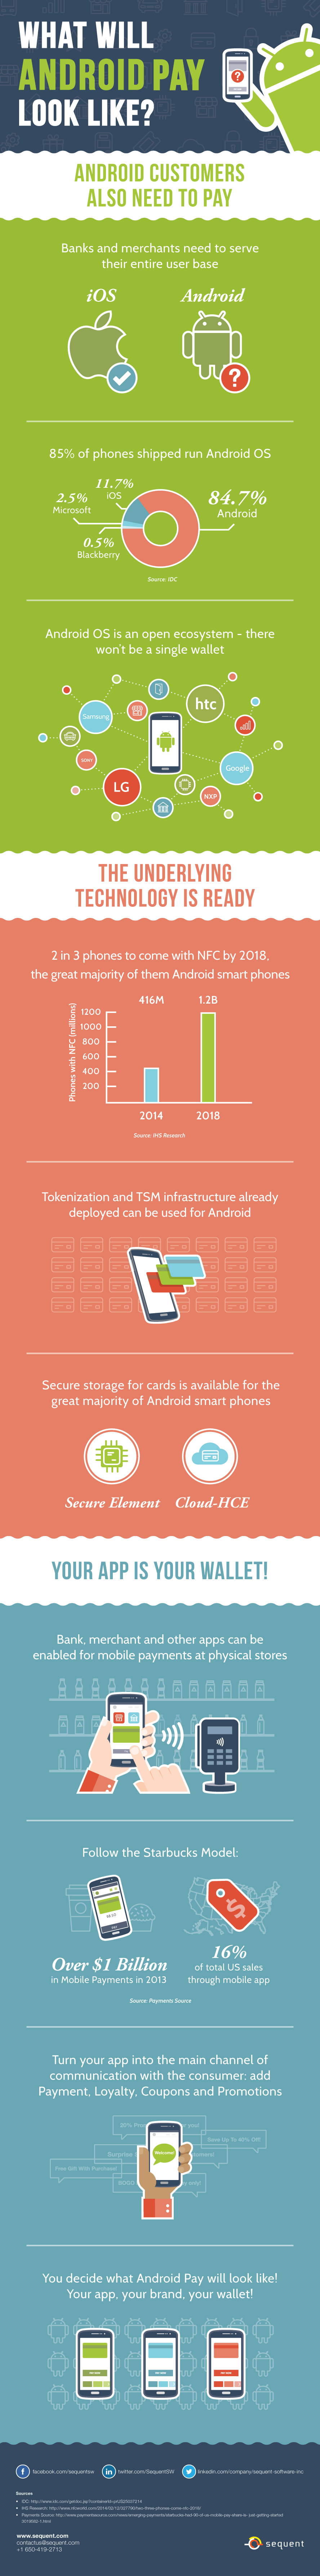 Infographic-What-Will-Android-Pay-Look-Like